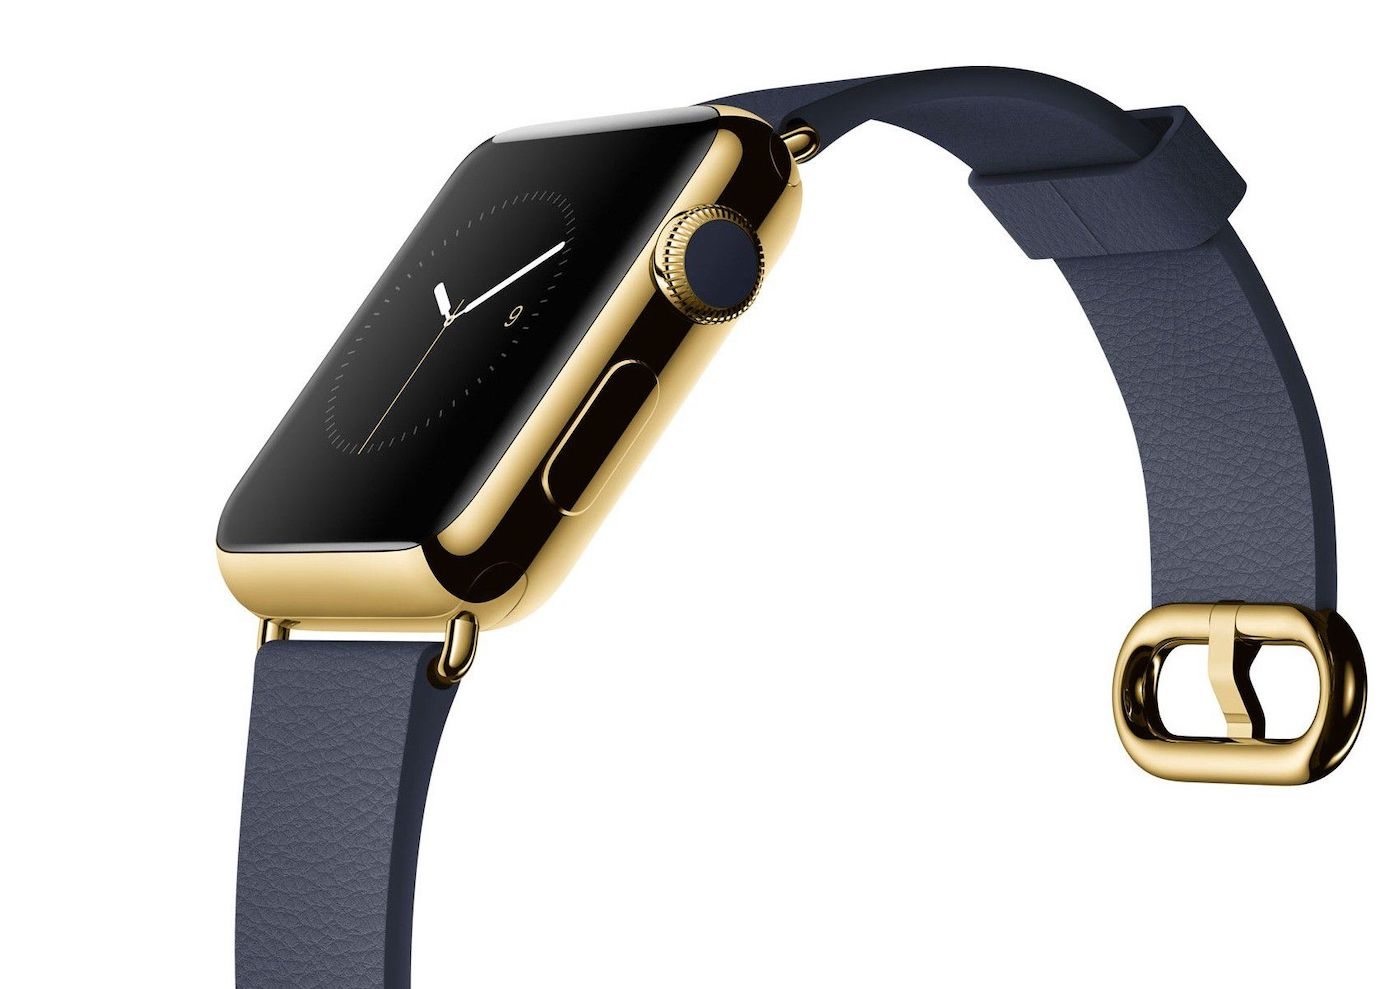 Apple Watch Edition Or 18 Carats - L'Apple Watch en or 18 carat a été un véritable flop commercial